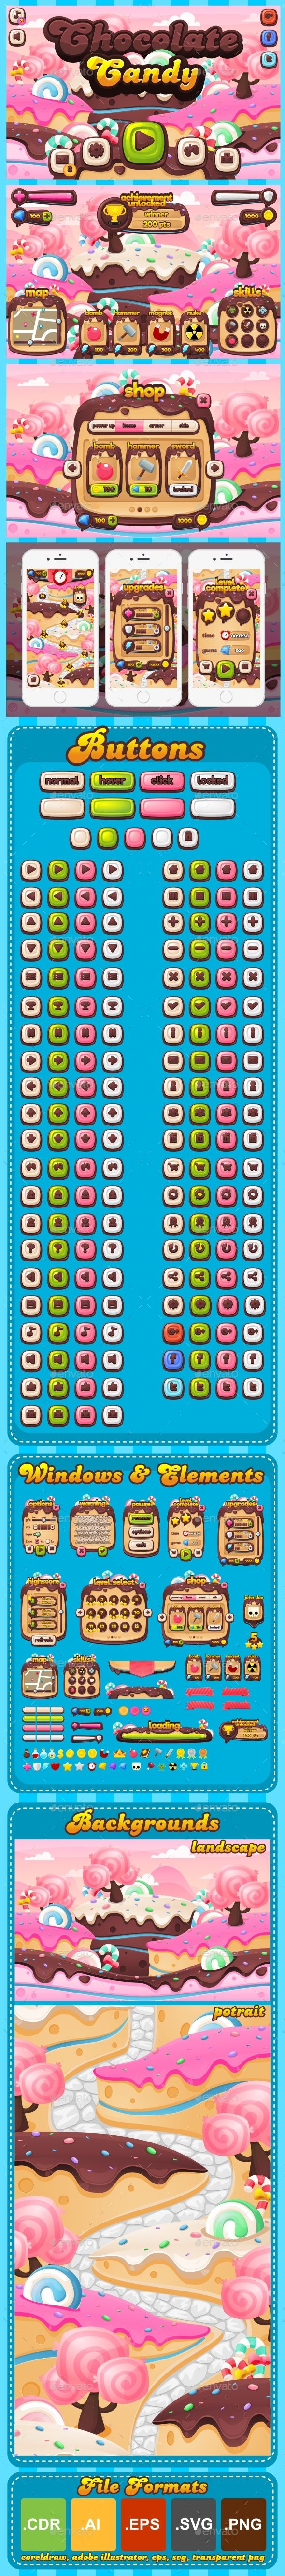 Chocolate Candy - Game GUI - #User Interfaces #Game Assets